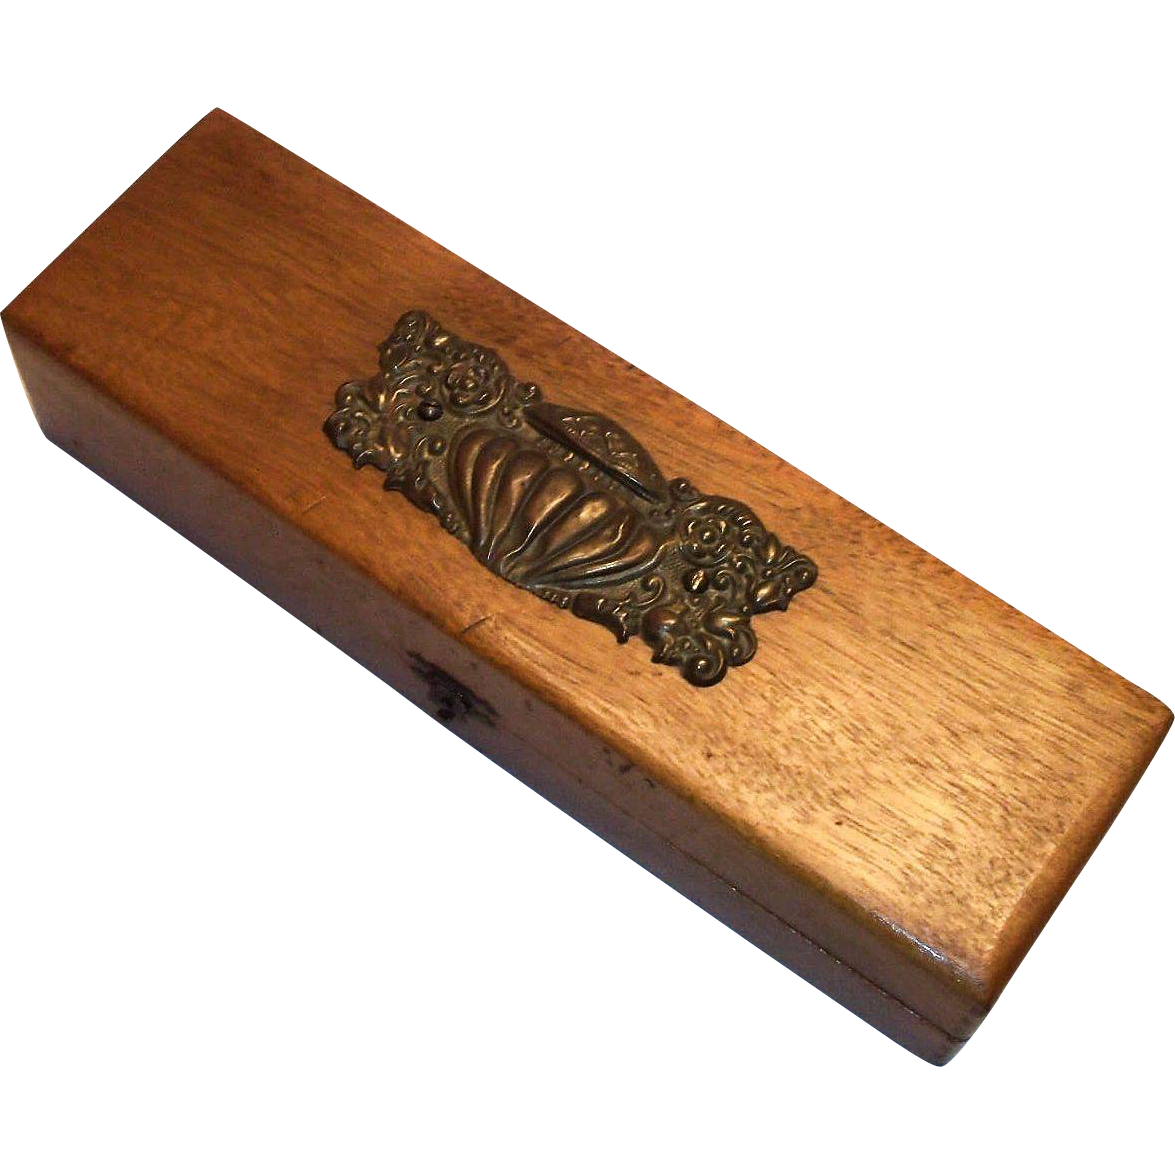 Lovely Wooden Glove Box With Metal Filigree Urn Top Design